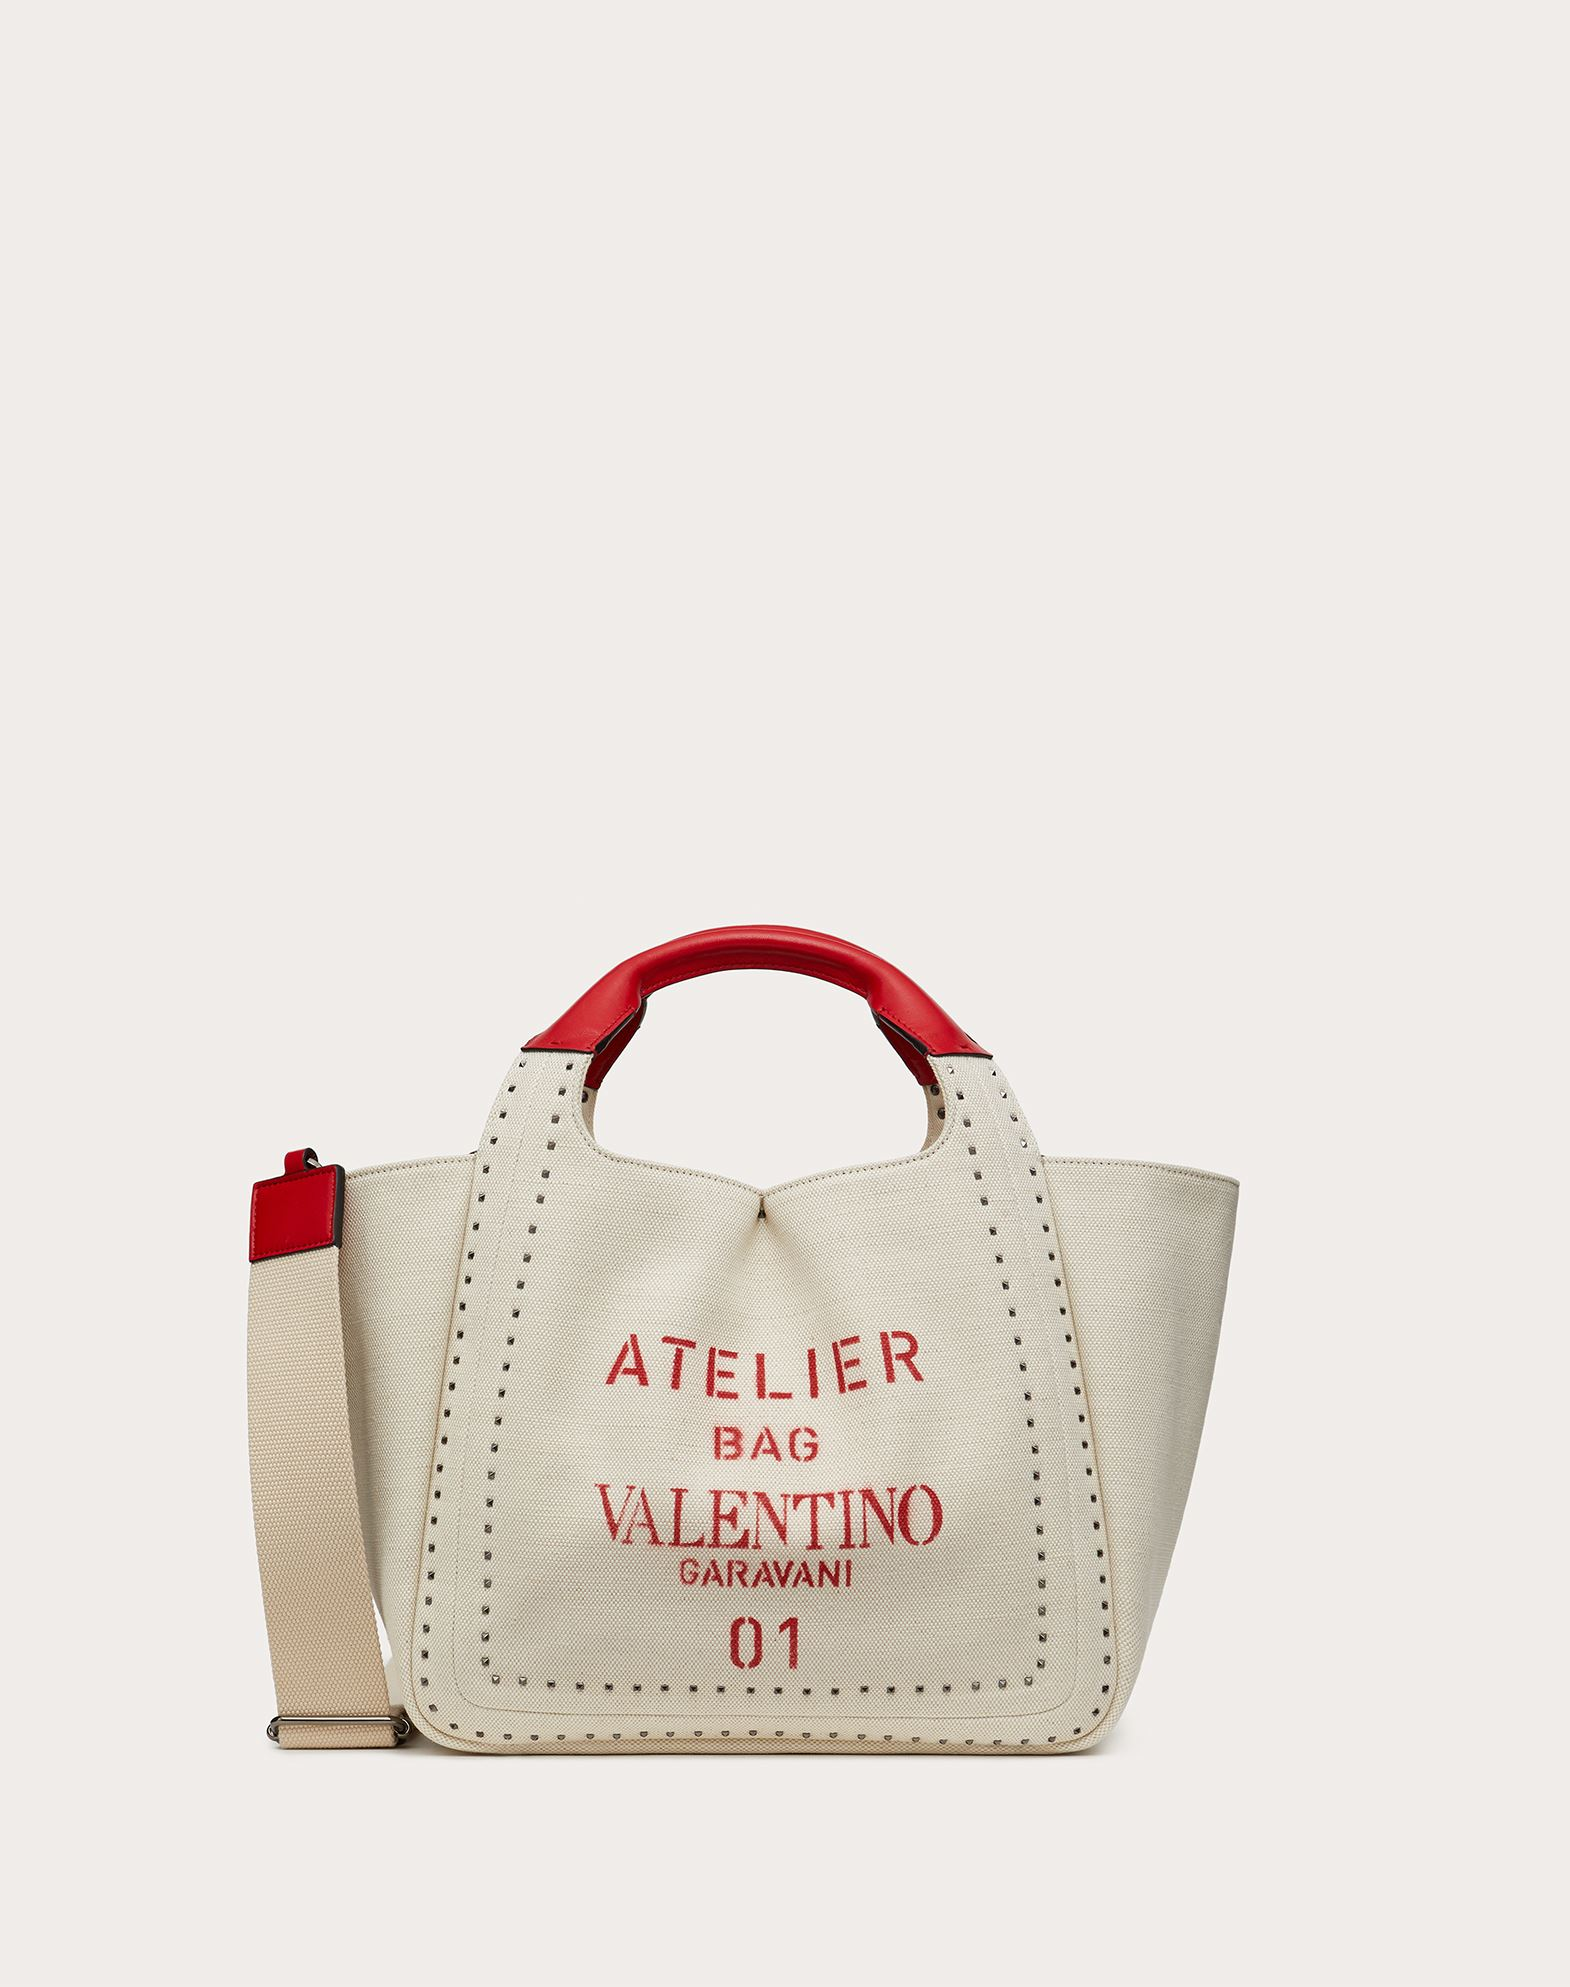 24th Birthday Gift Bag Tote Shopping Limited Edition 1996 Aged To Perfection Mam